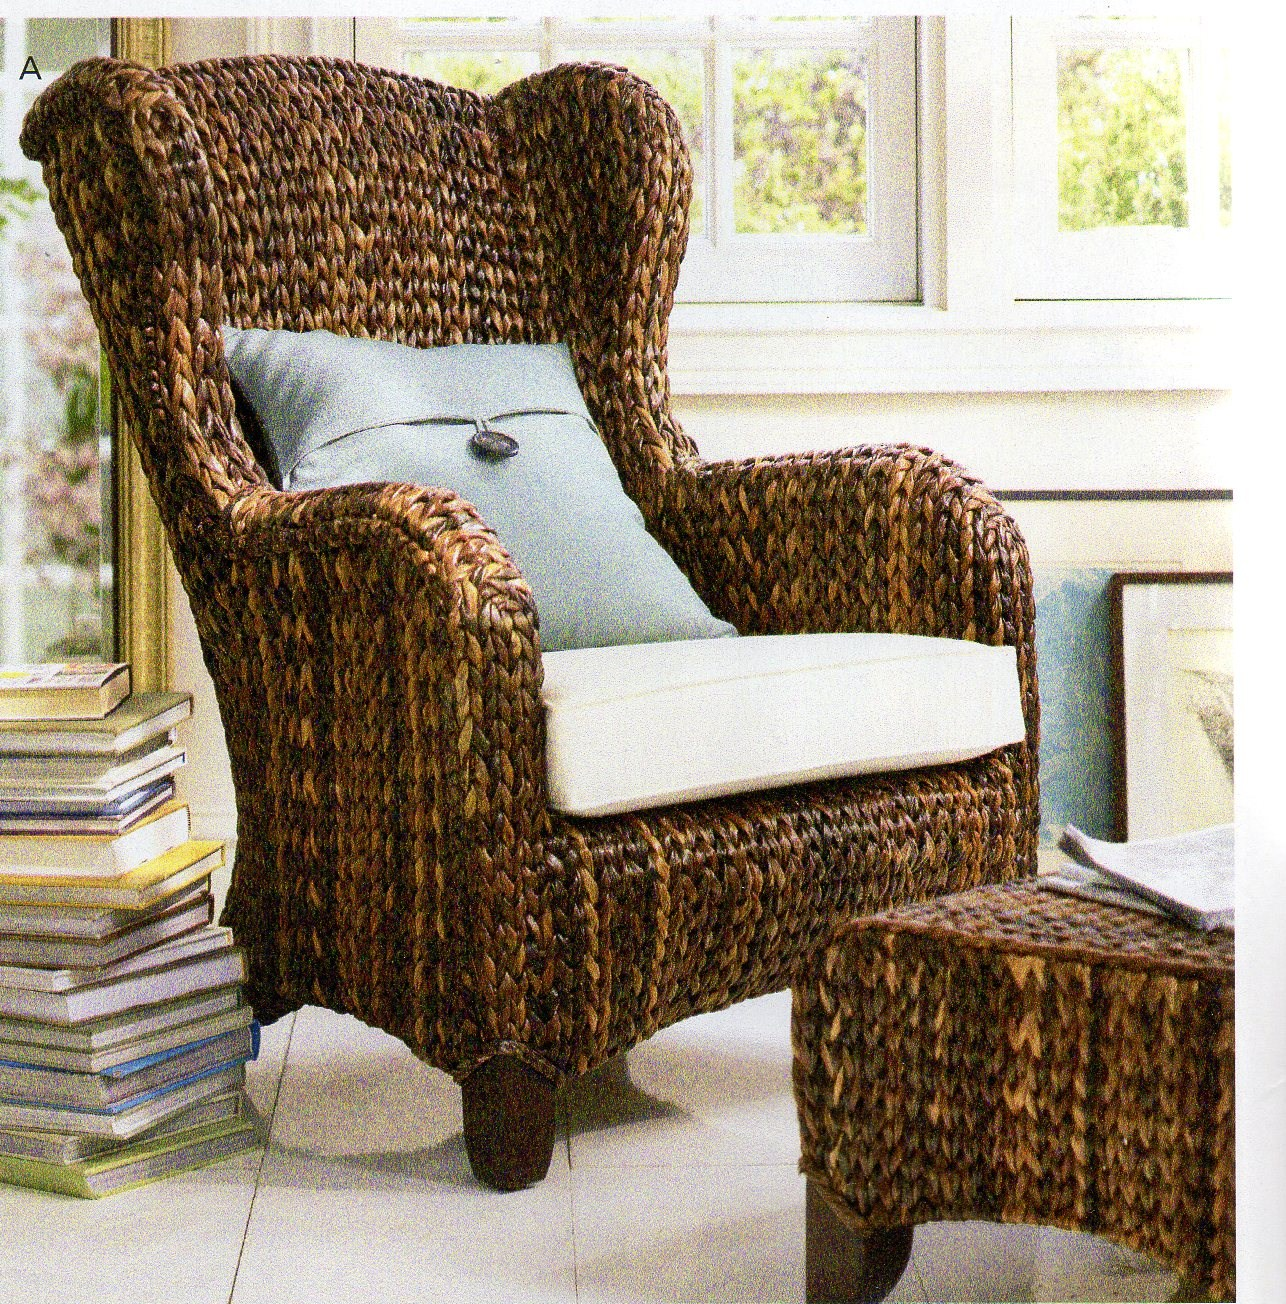 This is NOT your ordinary wicker chair. It's a Pottery Barn chair ...